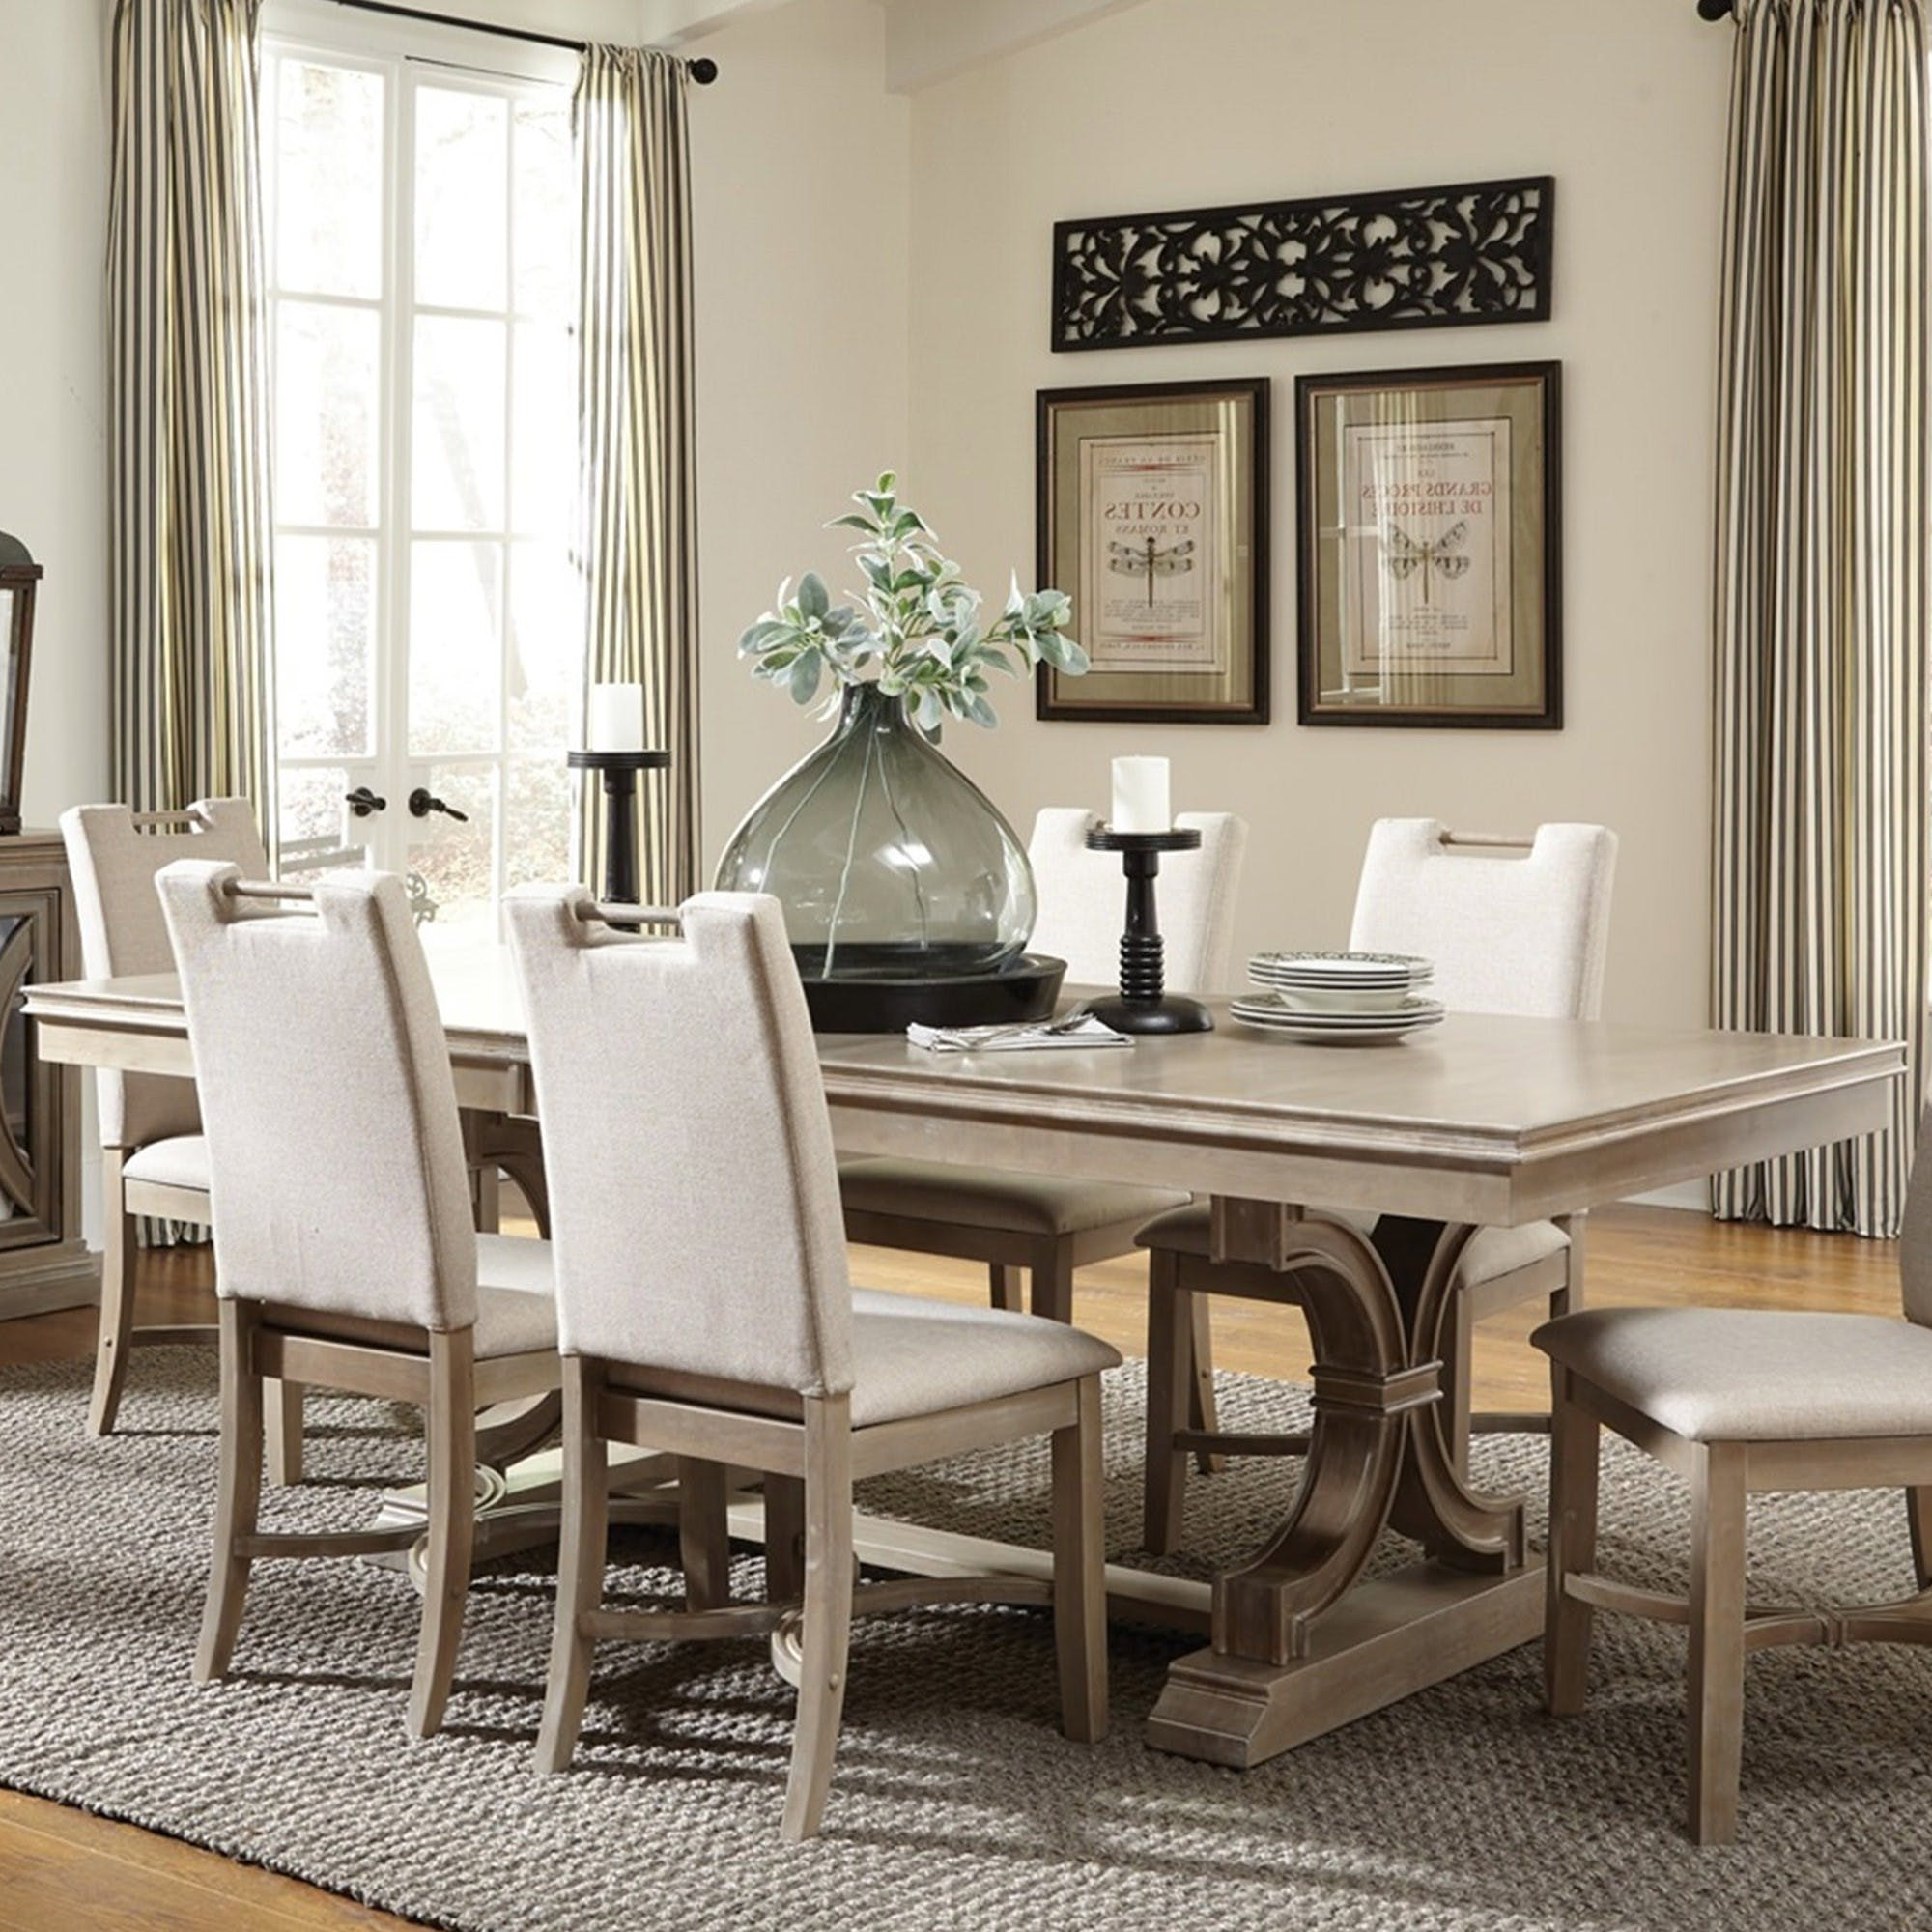 Transitional Rectangular Dining Tables Pertaining To Latest Sonoma Rectangular Dining Table – Bernie & Phyl's Furniture (View 16 of 21)